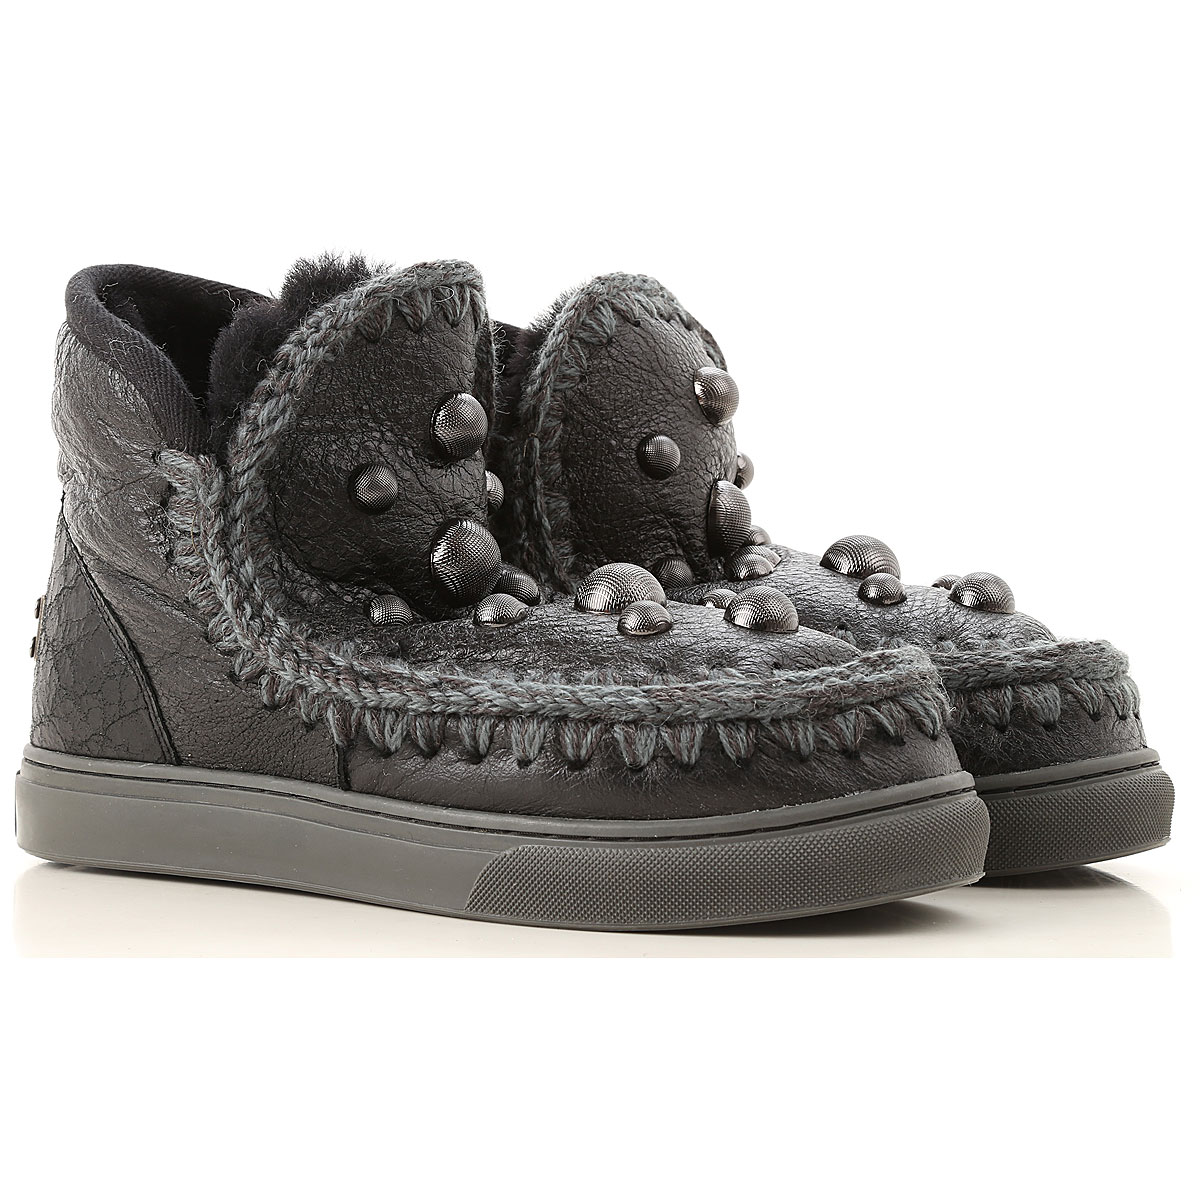 Image of Mou Boots for Women, Booties, Black, Leather, 2017, EUR 37 - UK 4 - USA 6.5 EUR 38 - UK 5 - USA 7.5 EUR 39 - UK 6 - USA 8.5 EUR 40 - UK 7 - USA 9.5